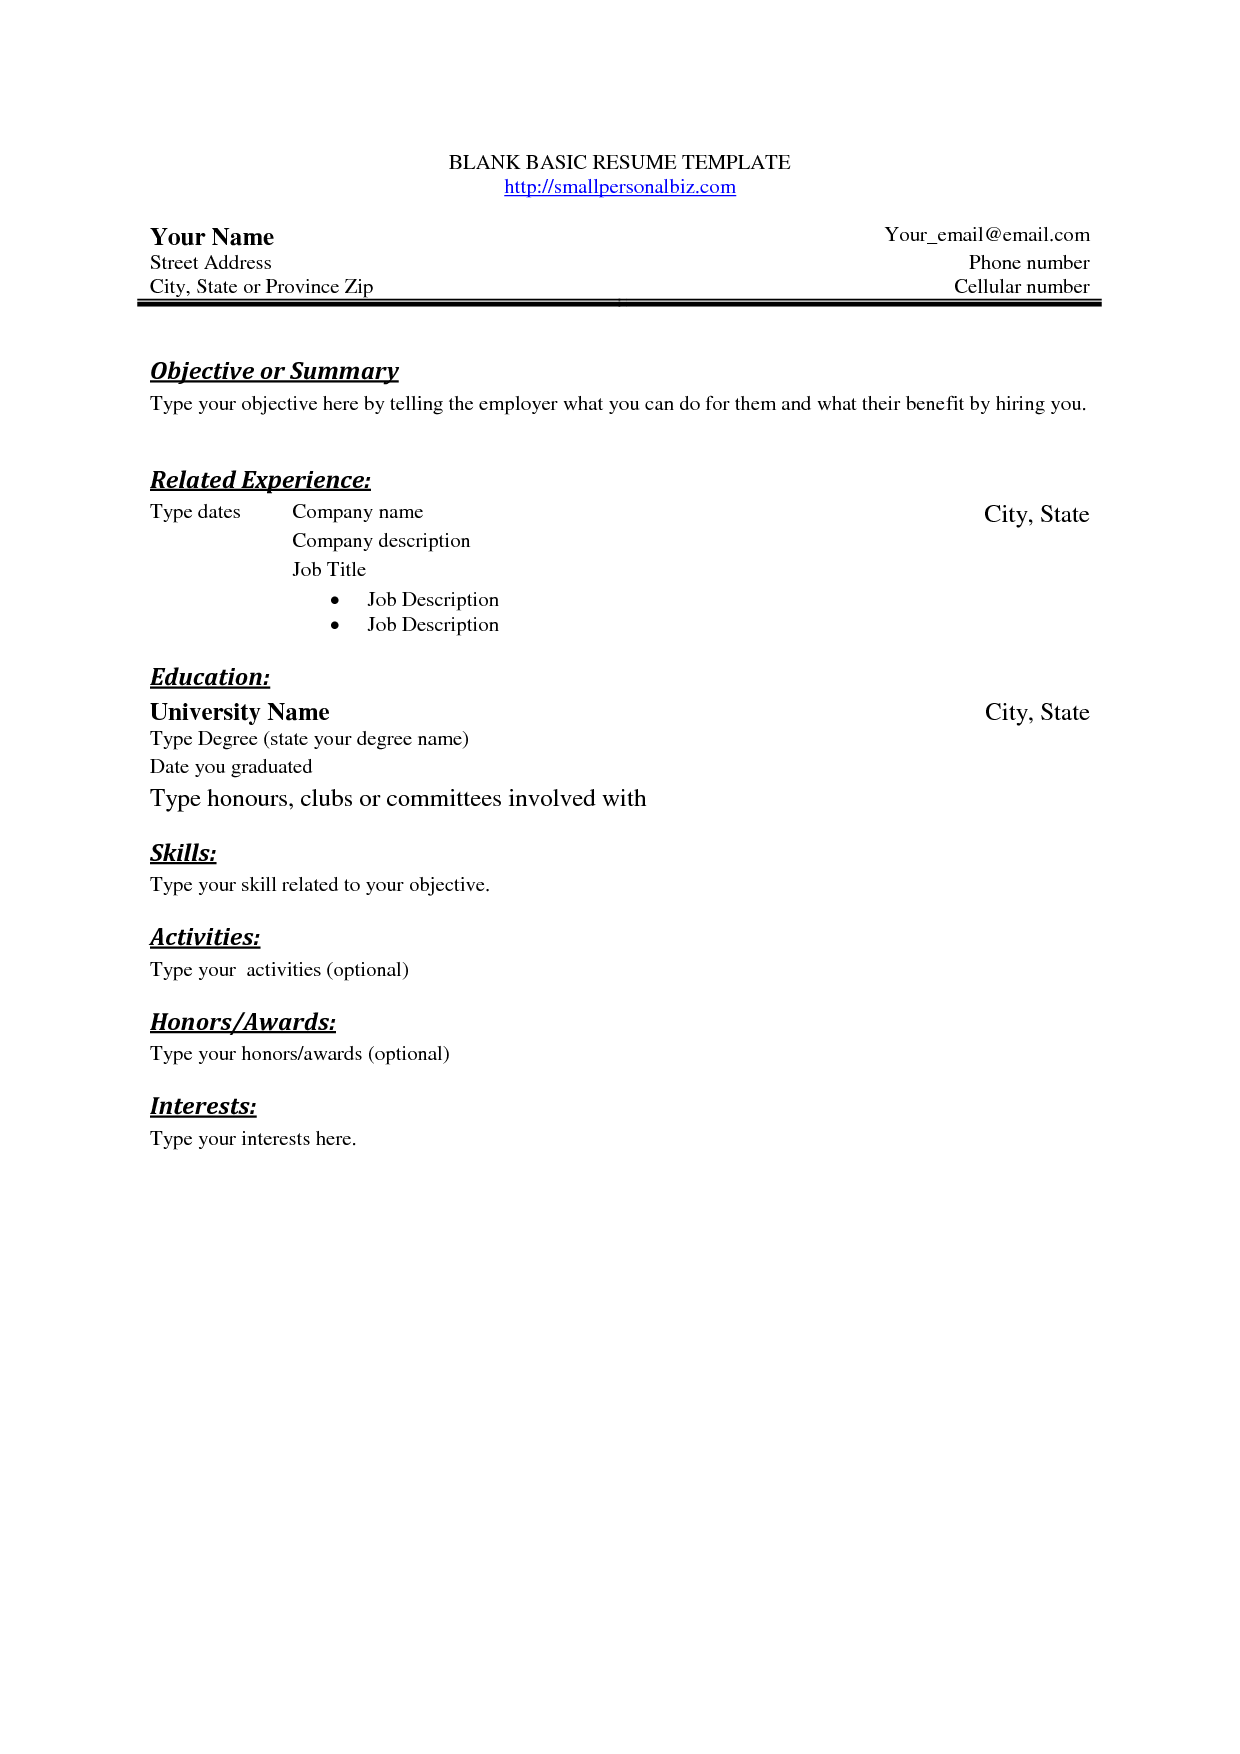 Simple Resume Templates Stylist And Luxury Simple Resume Layout 10 Free Basic Blank Resume